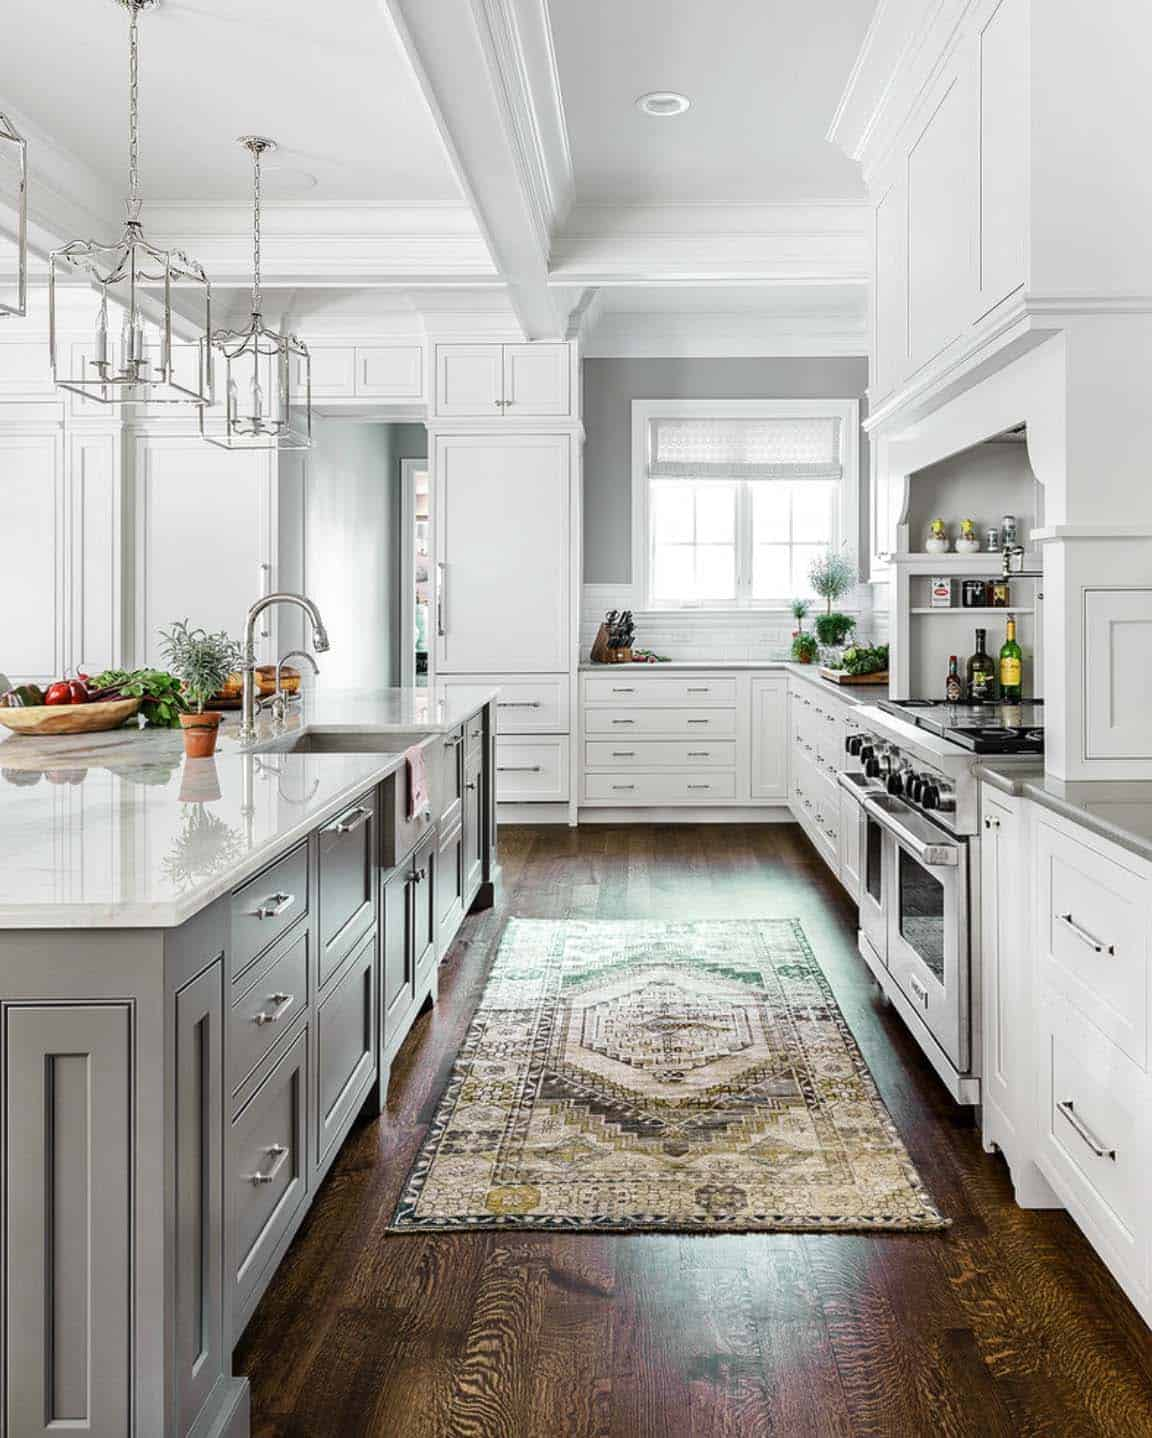 10 Beautiful White Beach House Kitchens: 30+ Beautiful And Inspiring Light-filled Kitchens With